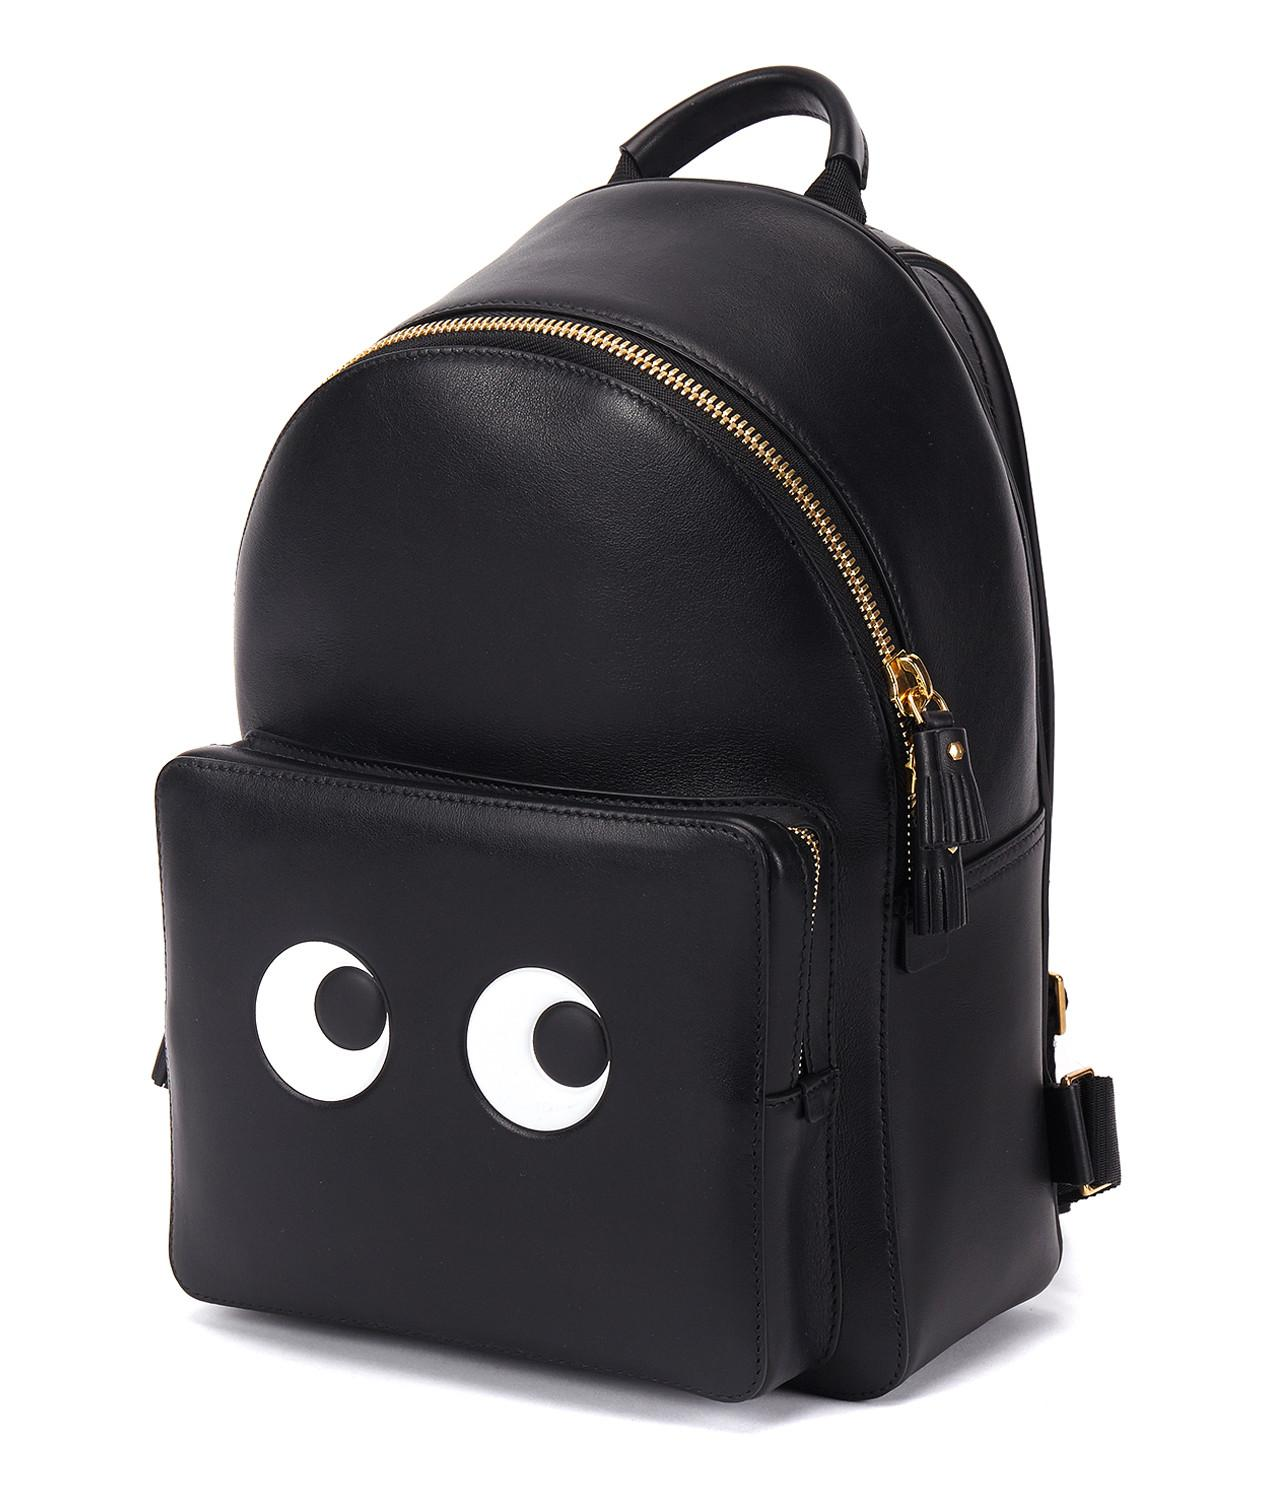 01210ed9d747 Anya Hindmarch Mini Eyes Backpack in Black - Save 47.84263959390863% - Lyst